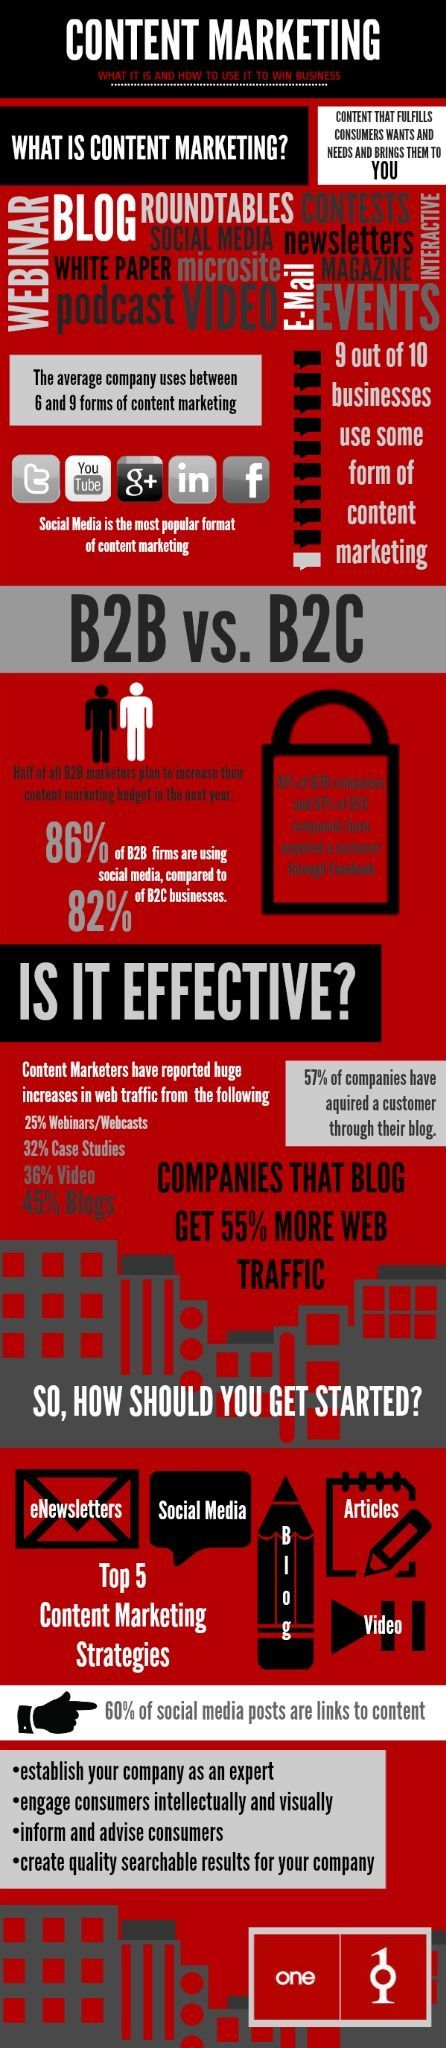 Best Images About Content Marketing On